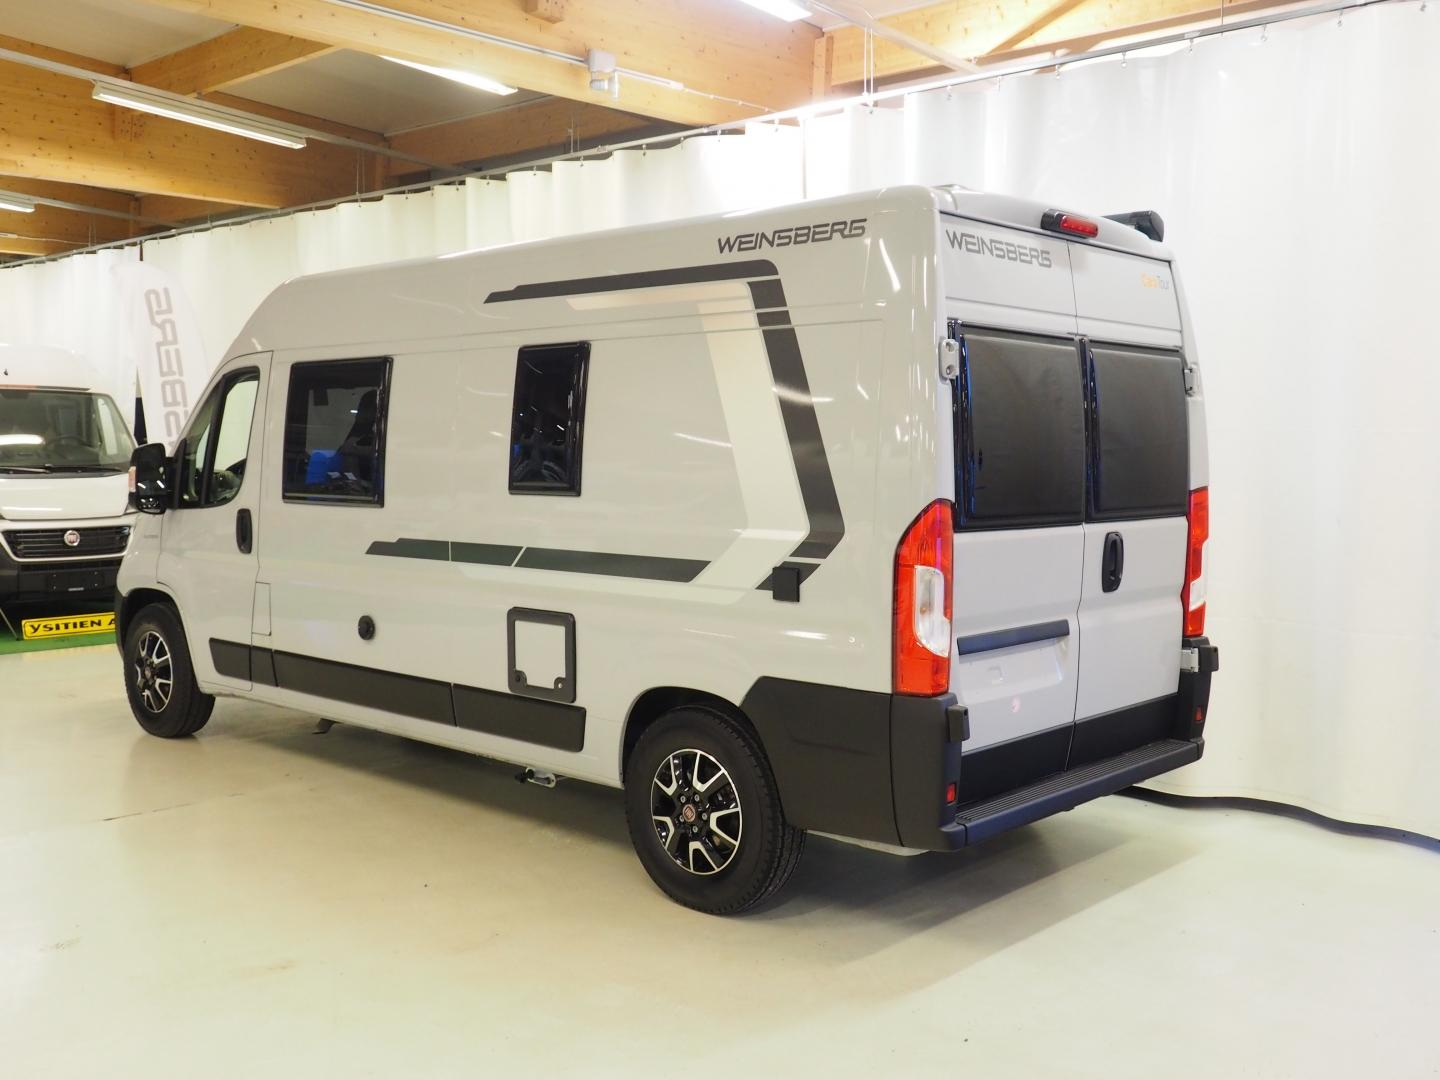 Weinsberg CaraTour 600 MQ, 50 Years Limited Edition 2,3 m-jet140hv